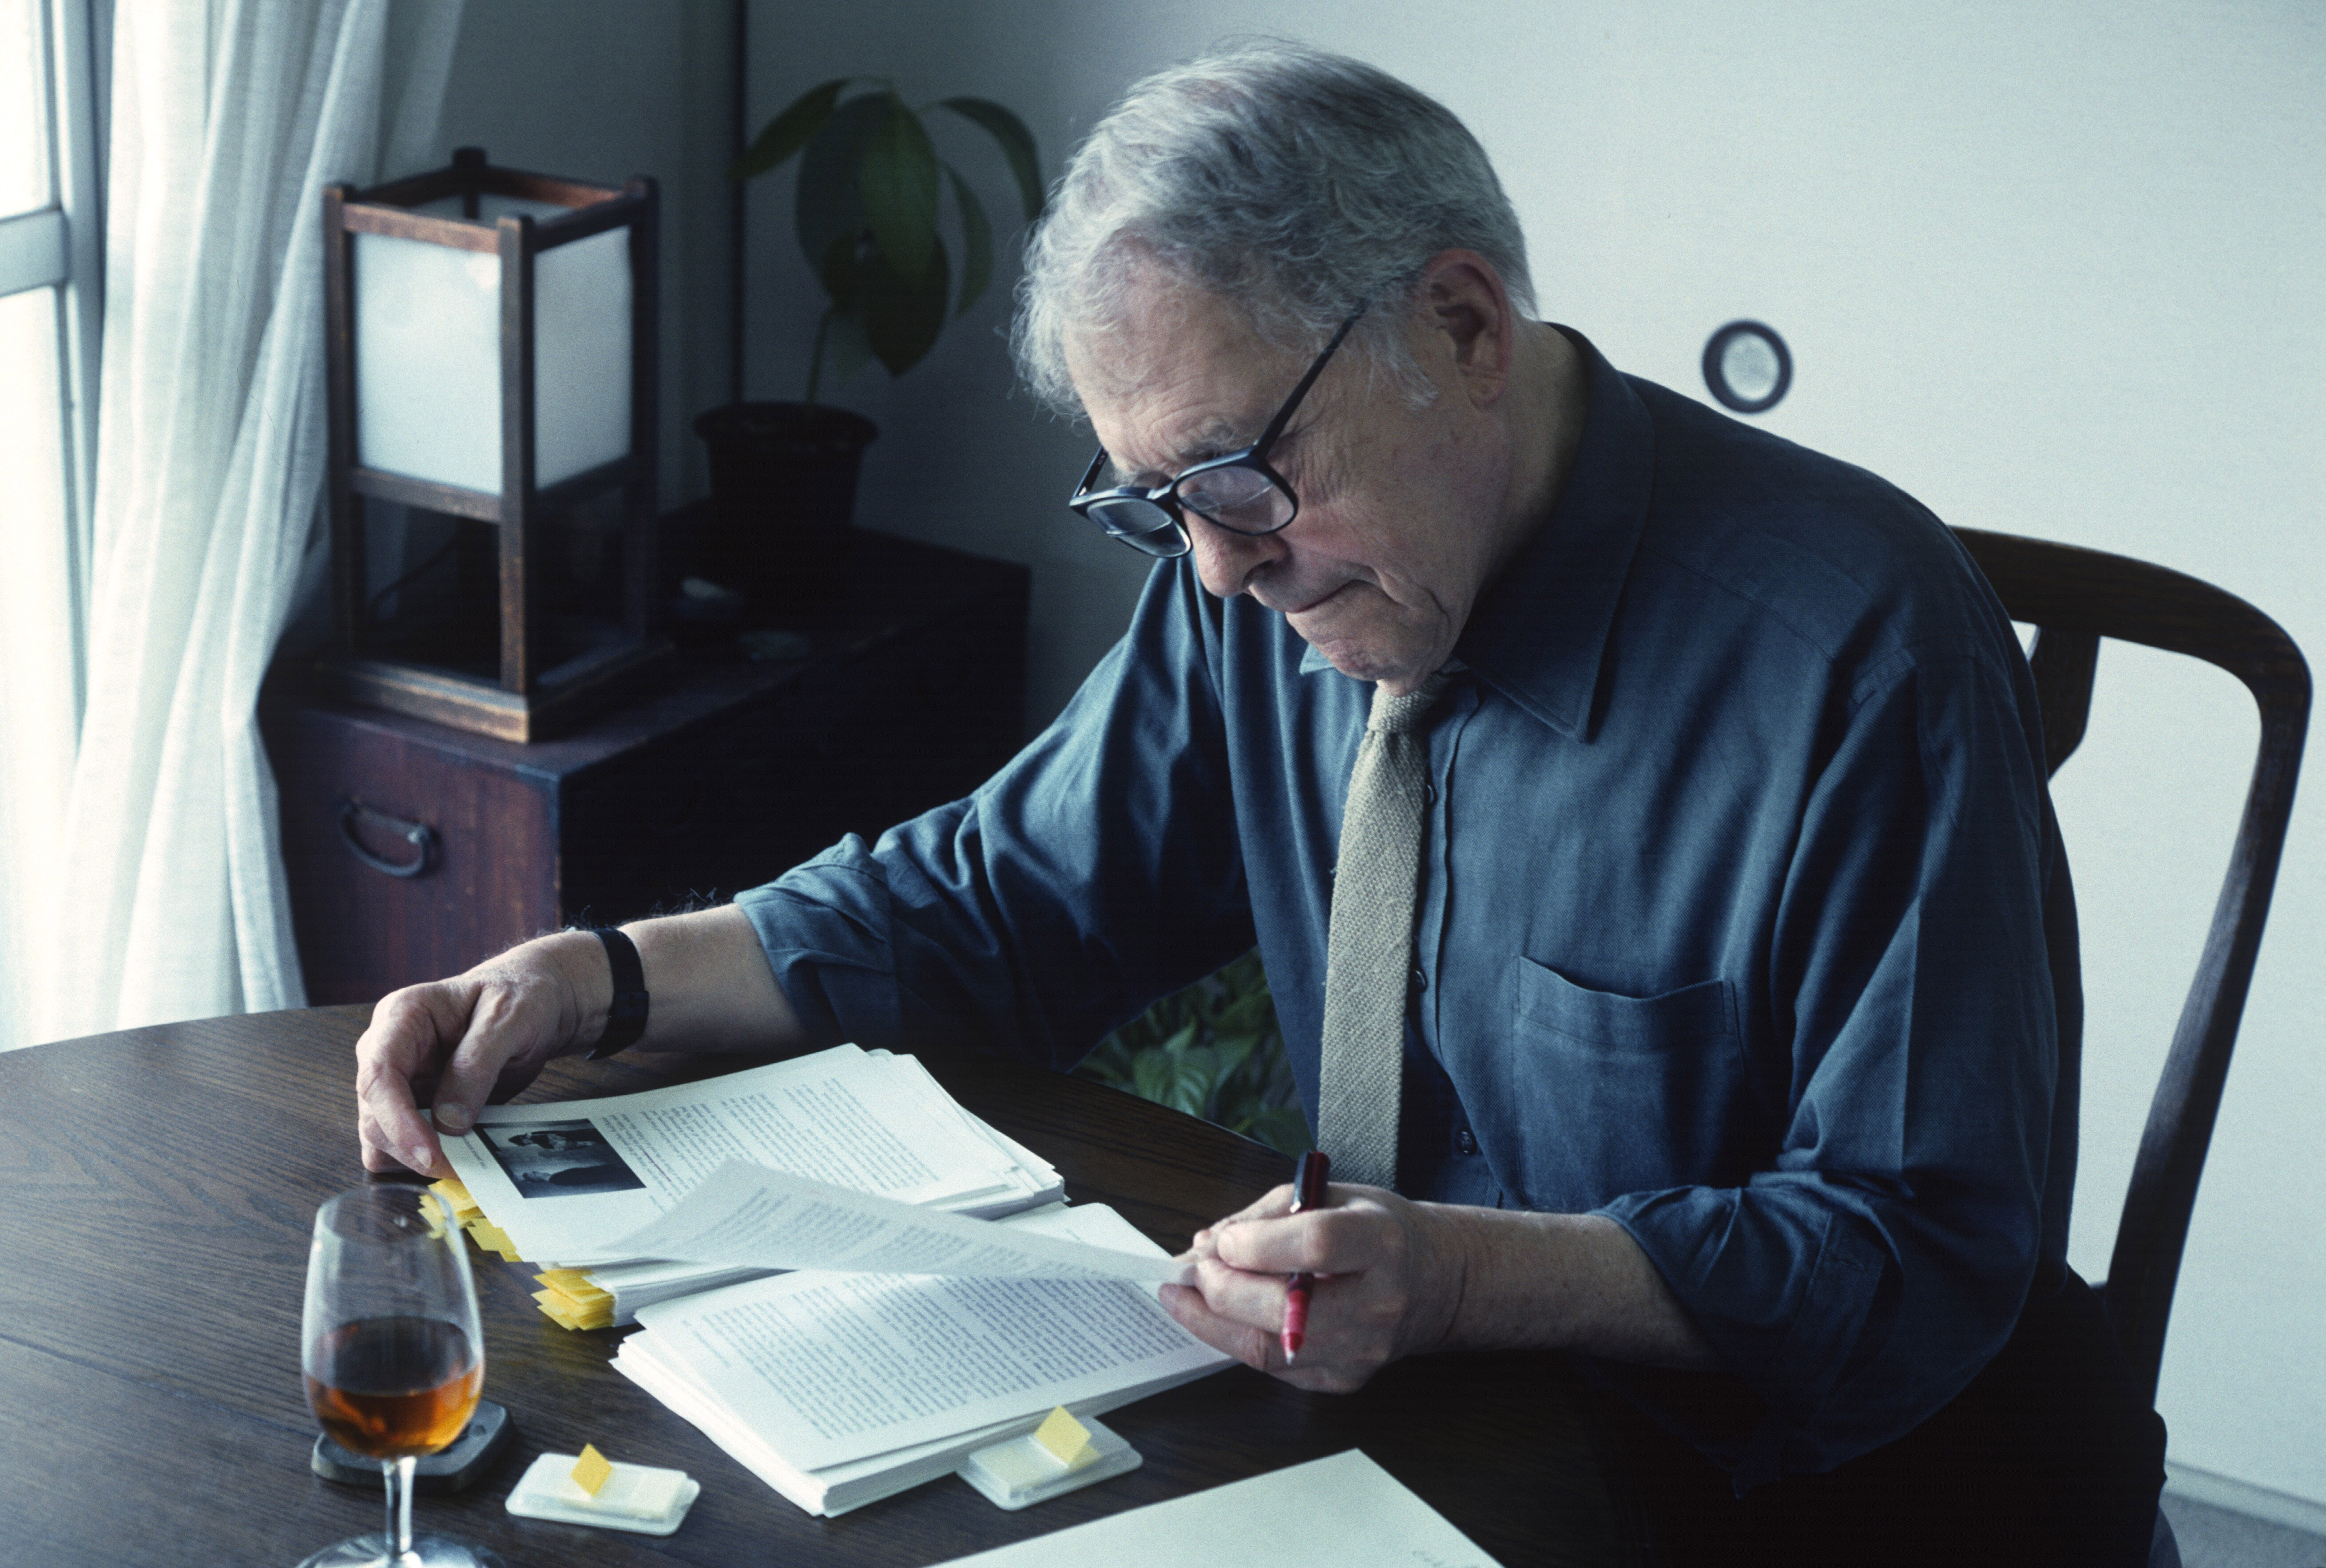 Embedded reflections: Donald Richie in 2004, in his home beside Tokyo's Ueno Park, overseeing the manuscript of his book 'The Japan Journals: 1947-2004.' | STEPHEN MANSFIELD